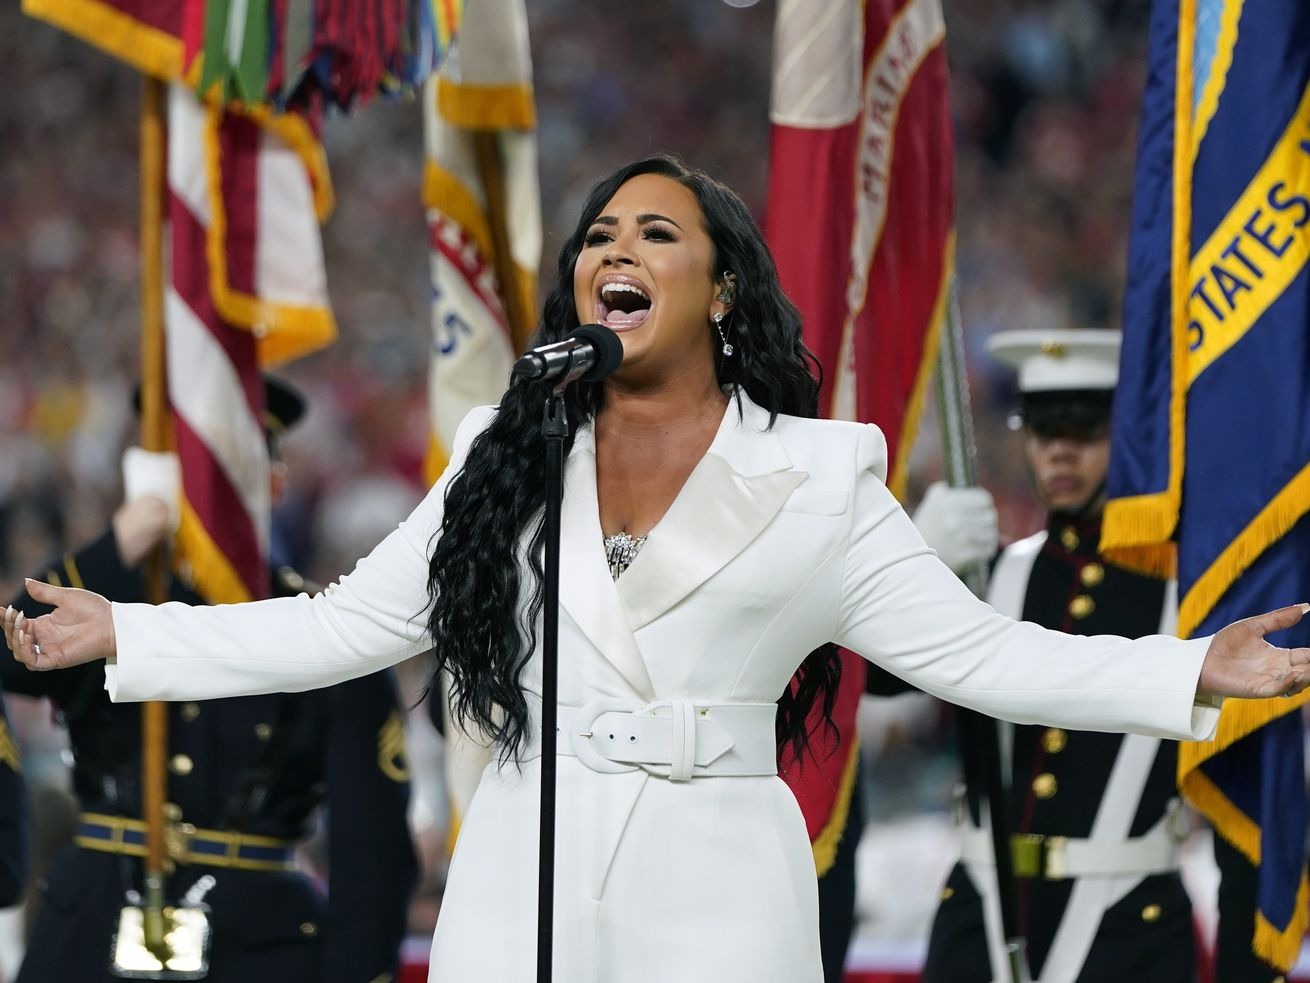 Demi Lovato performs the national anthem before the NFL Super Bowl 54 football game between the San Francisco 49ers and the Kansas City Chiefs in 2020.